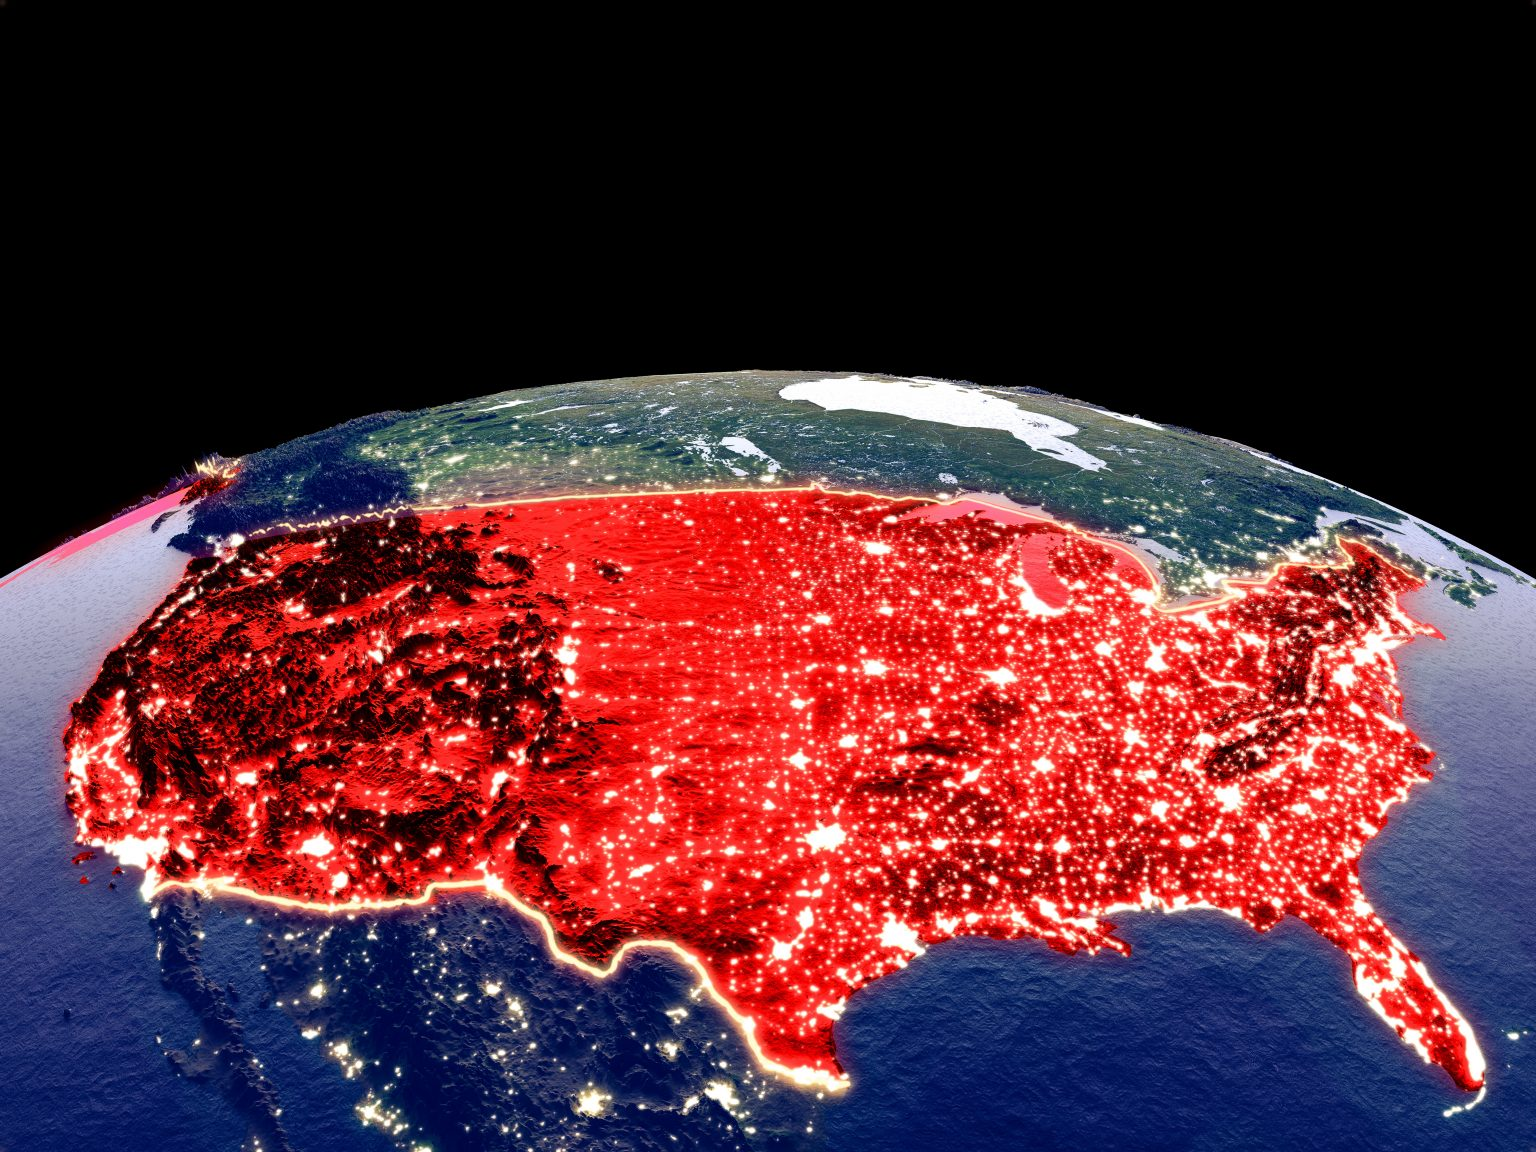 Homeland fears: Iranian attack on American power grid could kill 90% of Americans